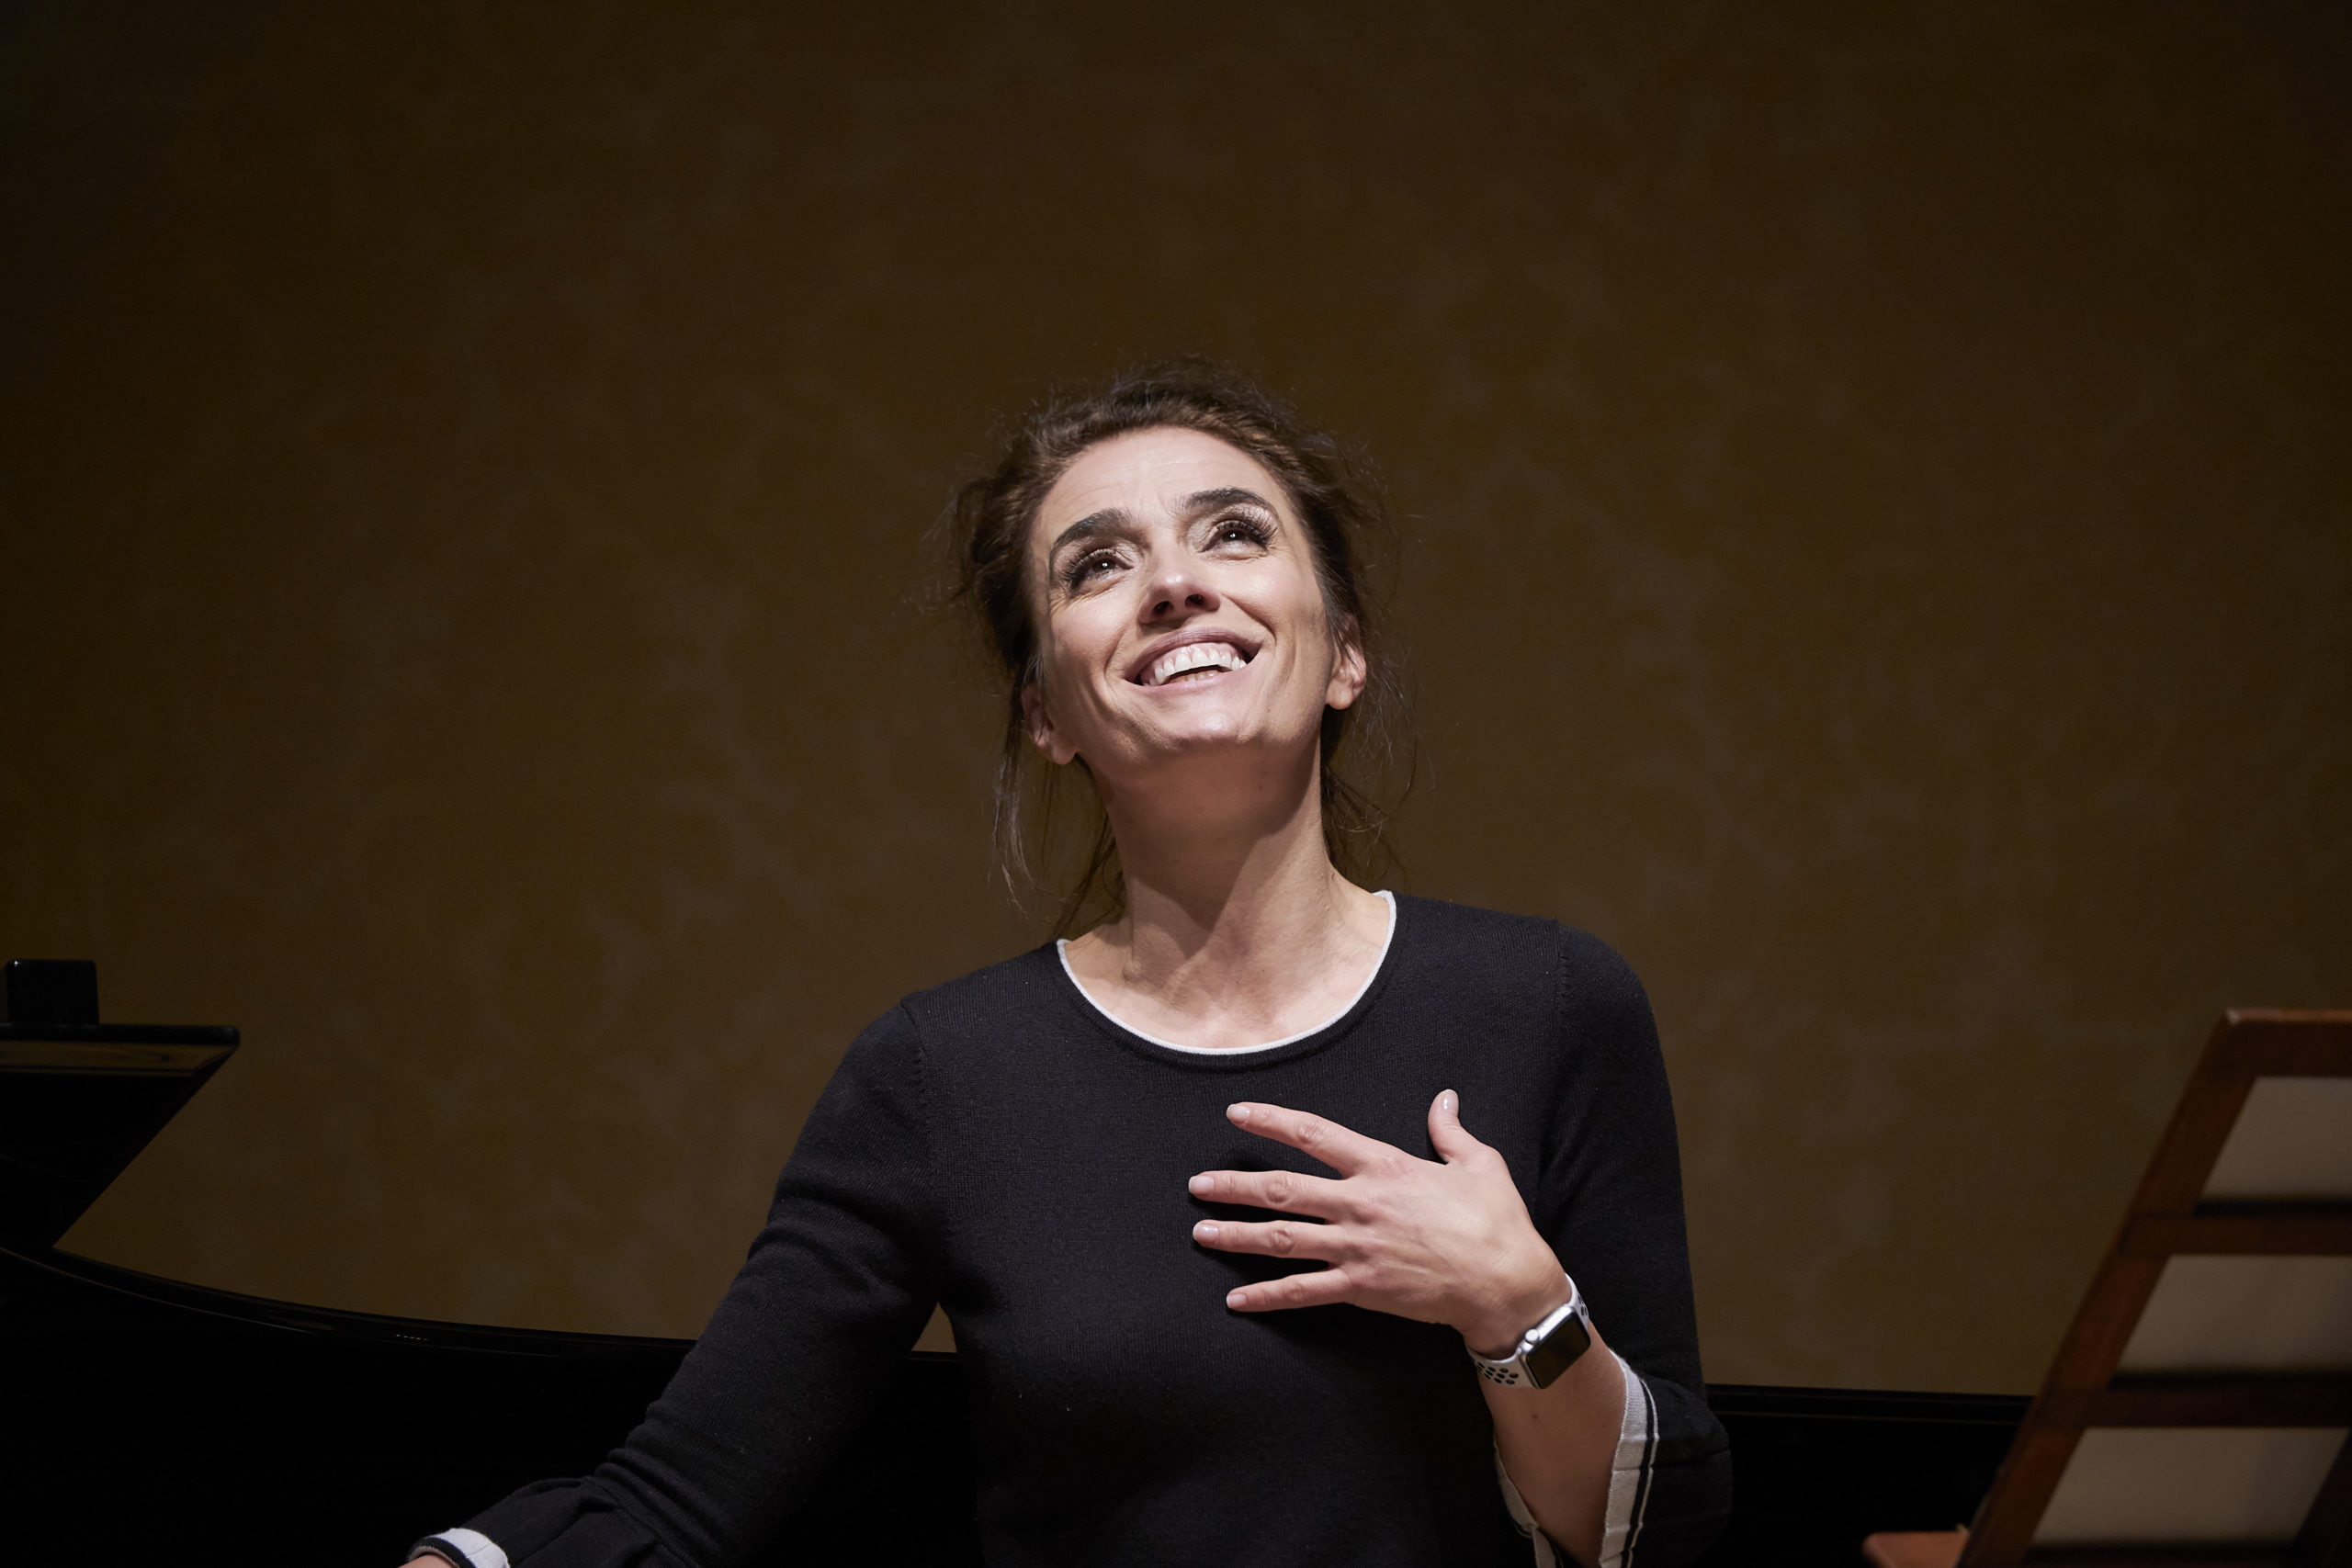 Ermonela Jaho, soprano, performance, singer, singing, live, voice, vocal, concert, recital, Wigmore Hall, London, opera, Opera Rara